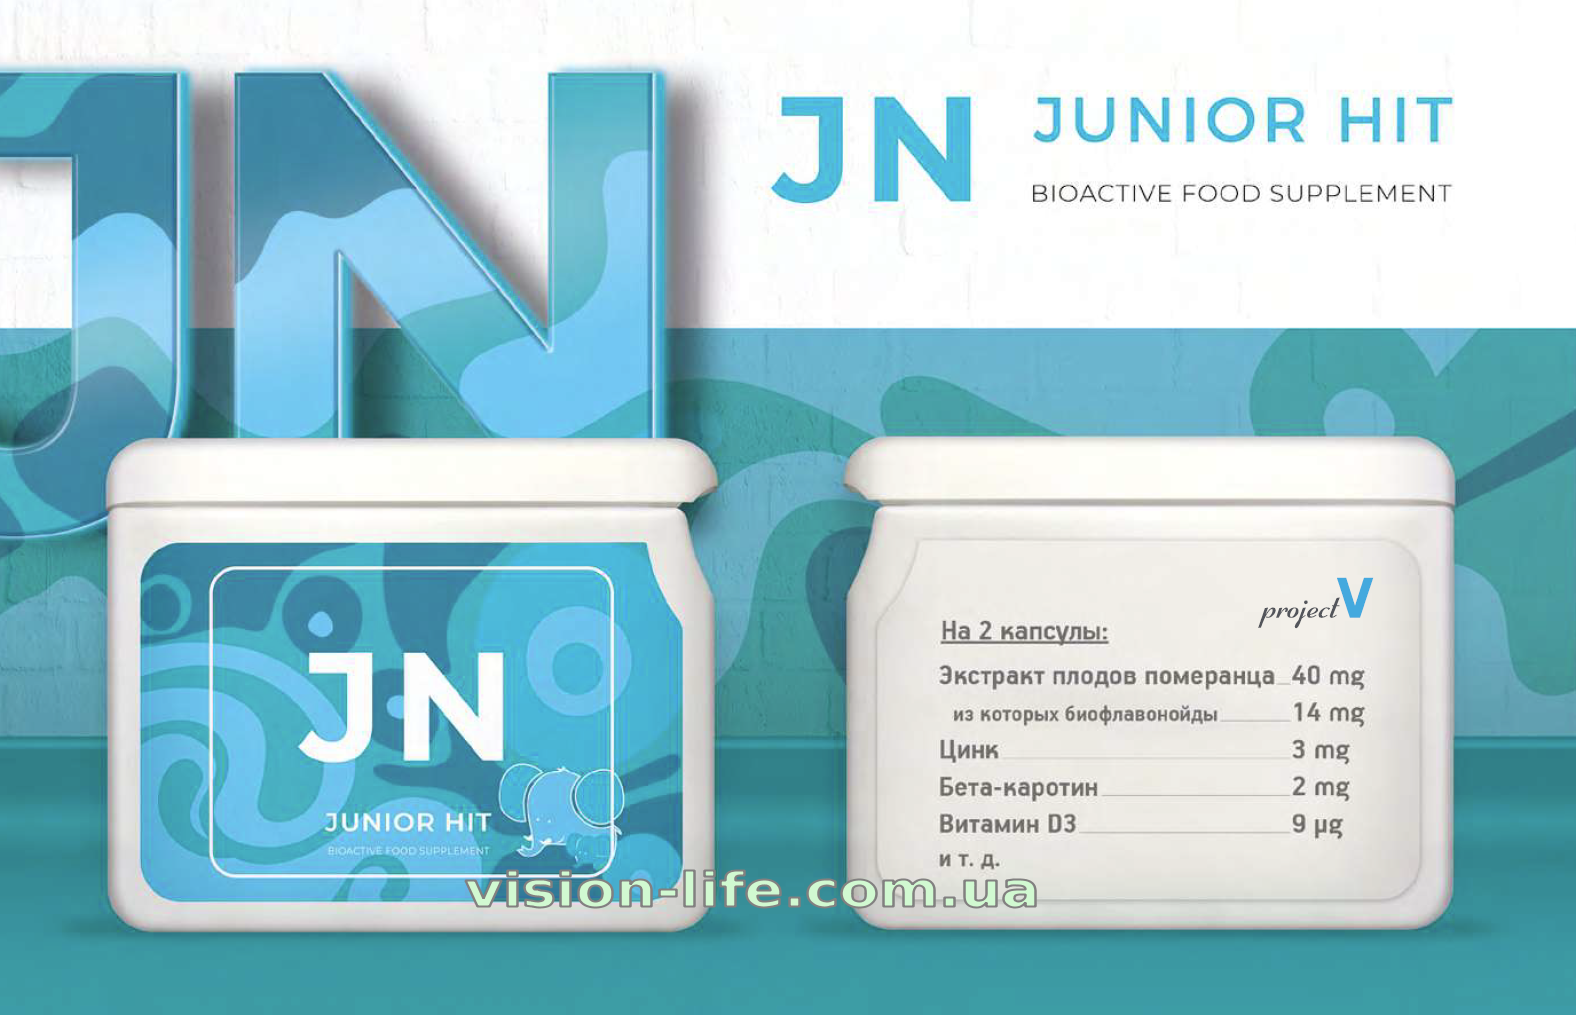 project v jn junior neo vision life 3